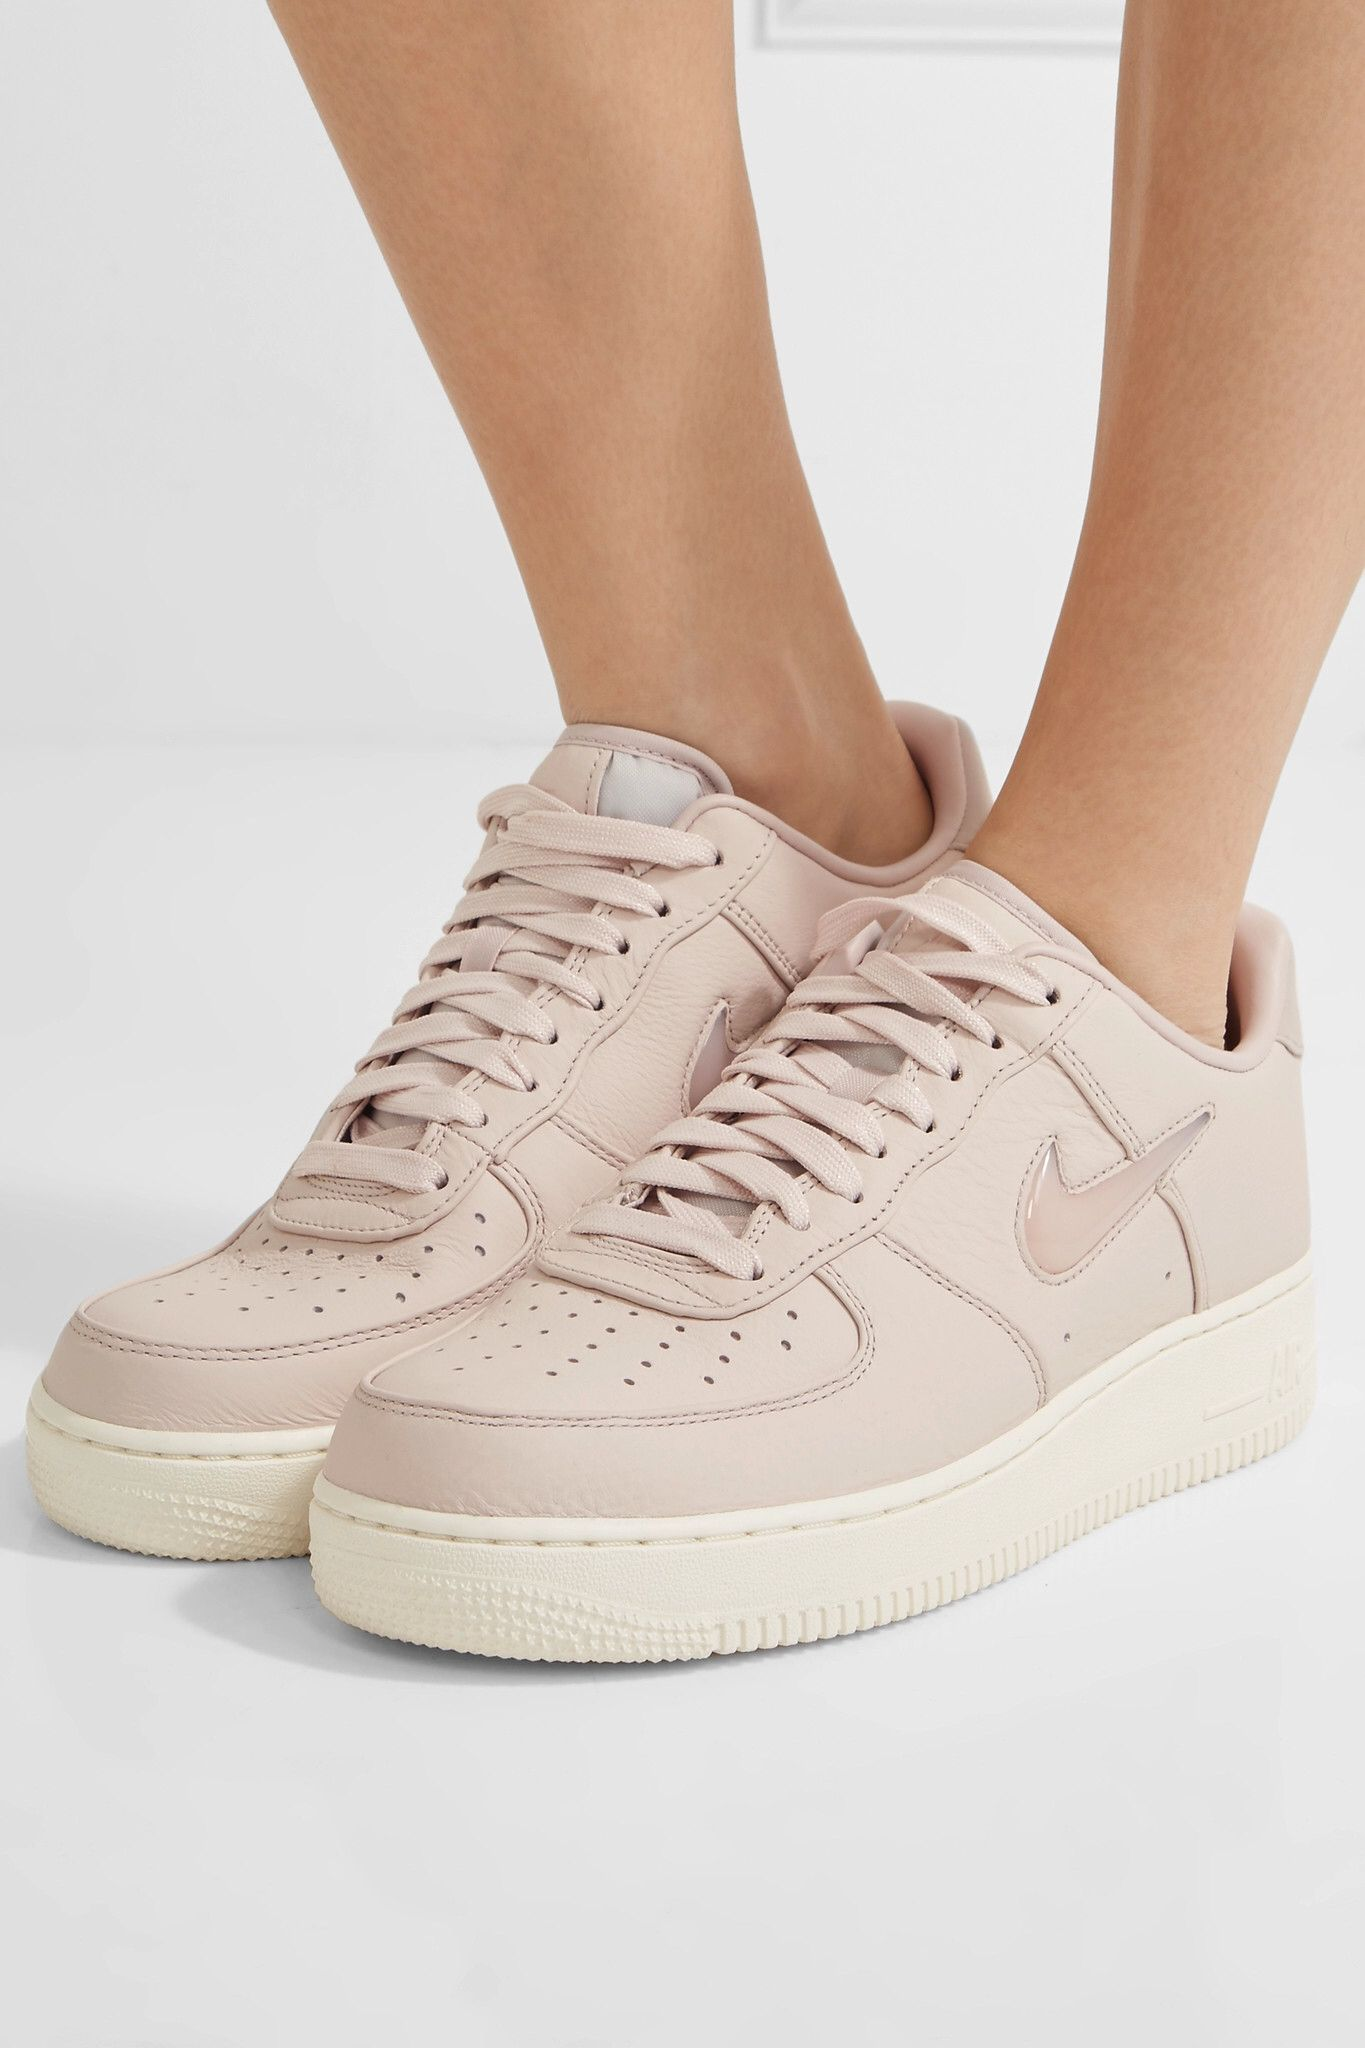 3d0e269d35 Nike Air Force 1 | Net-a-Porter | Leather sneakers, Nike, Sneakers